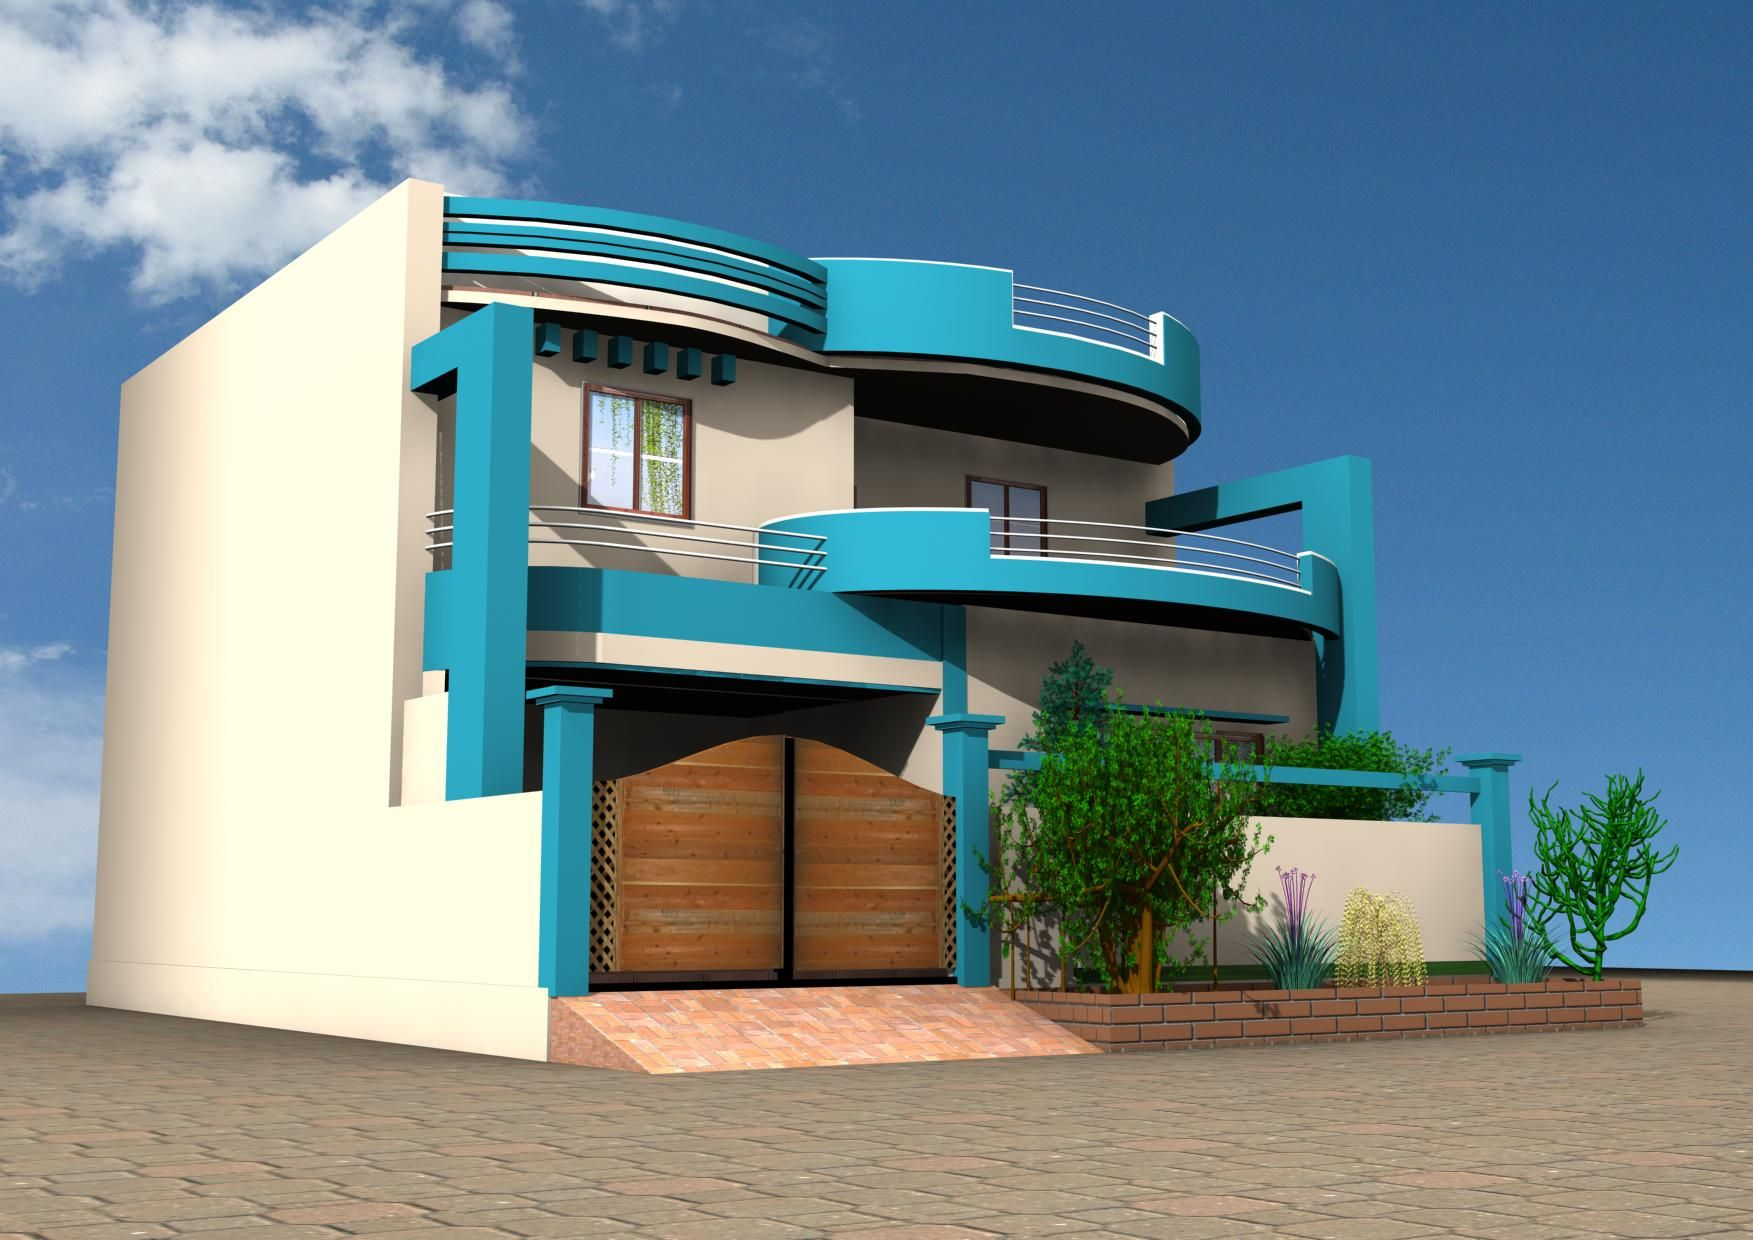 3d home design images hd 1080p for Easy architectural software